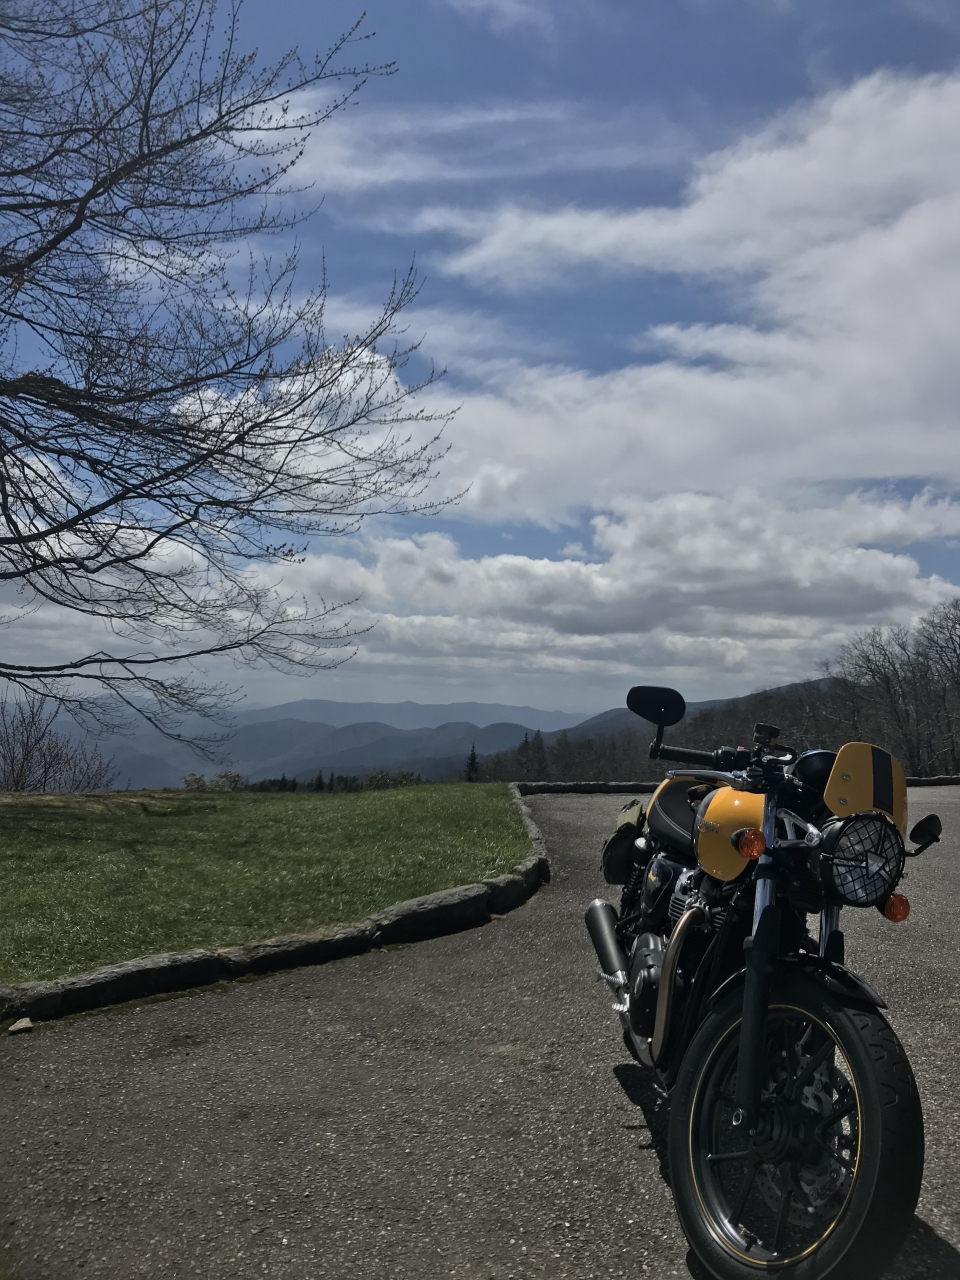 More Blue Ridge Parkway